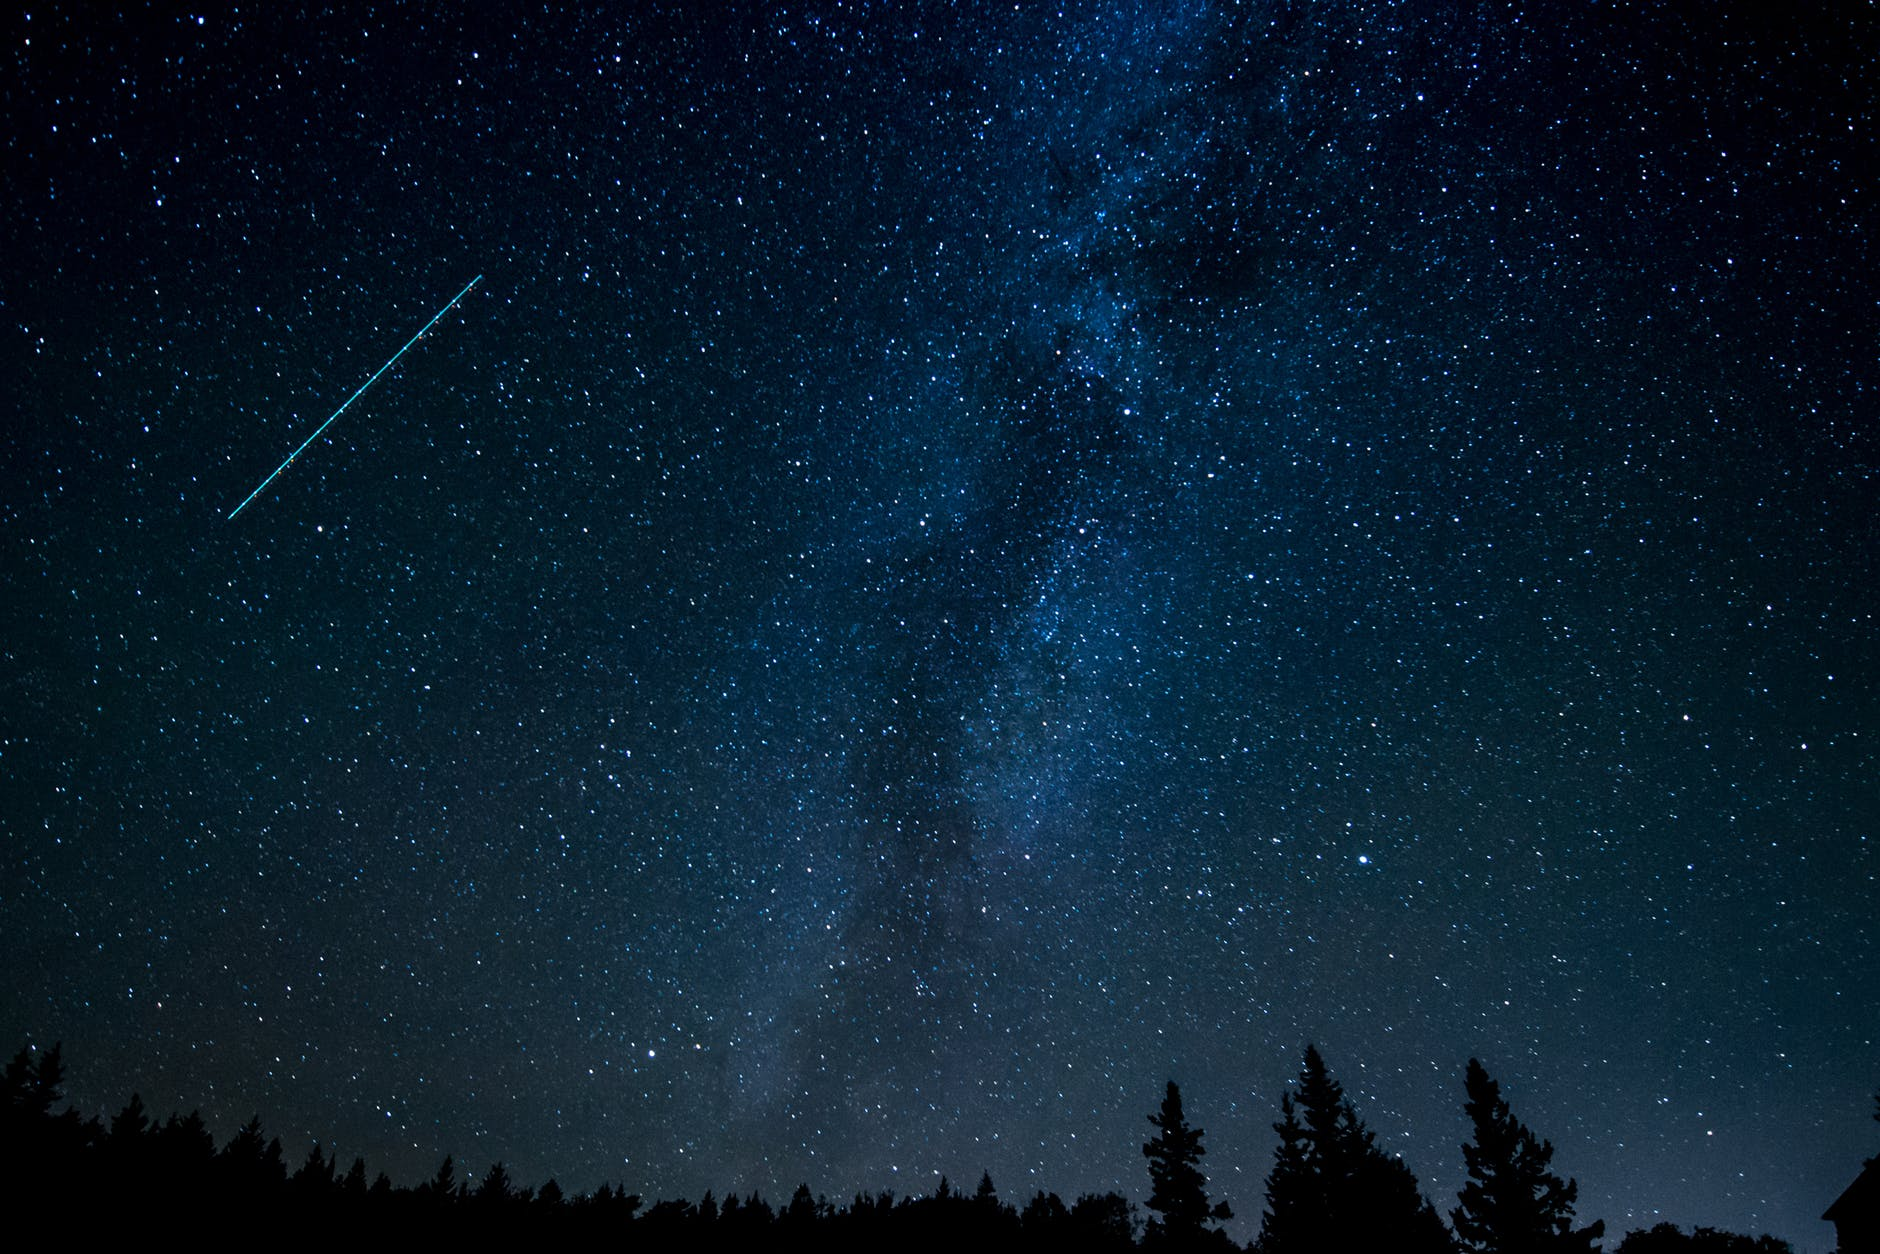 New Moon Poised To Reveal Spectacular Perseids 'Shooting Stars'